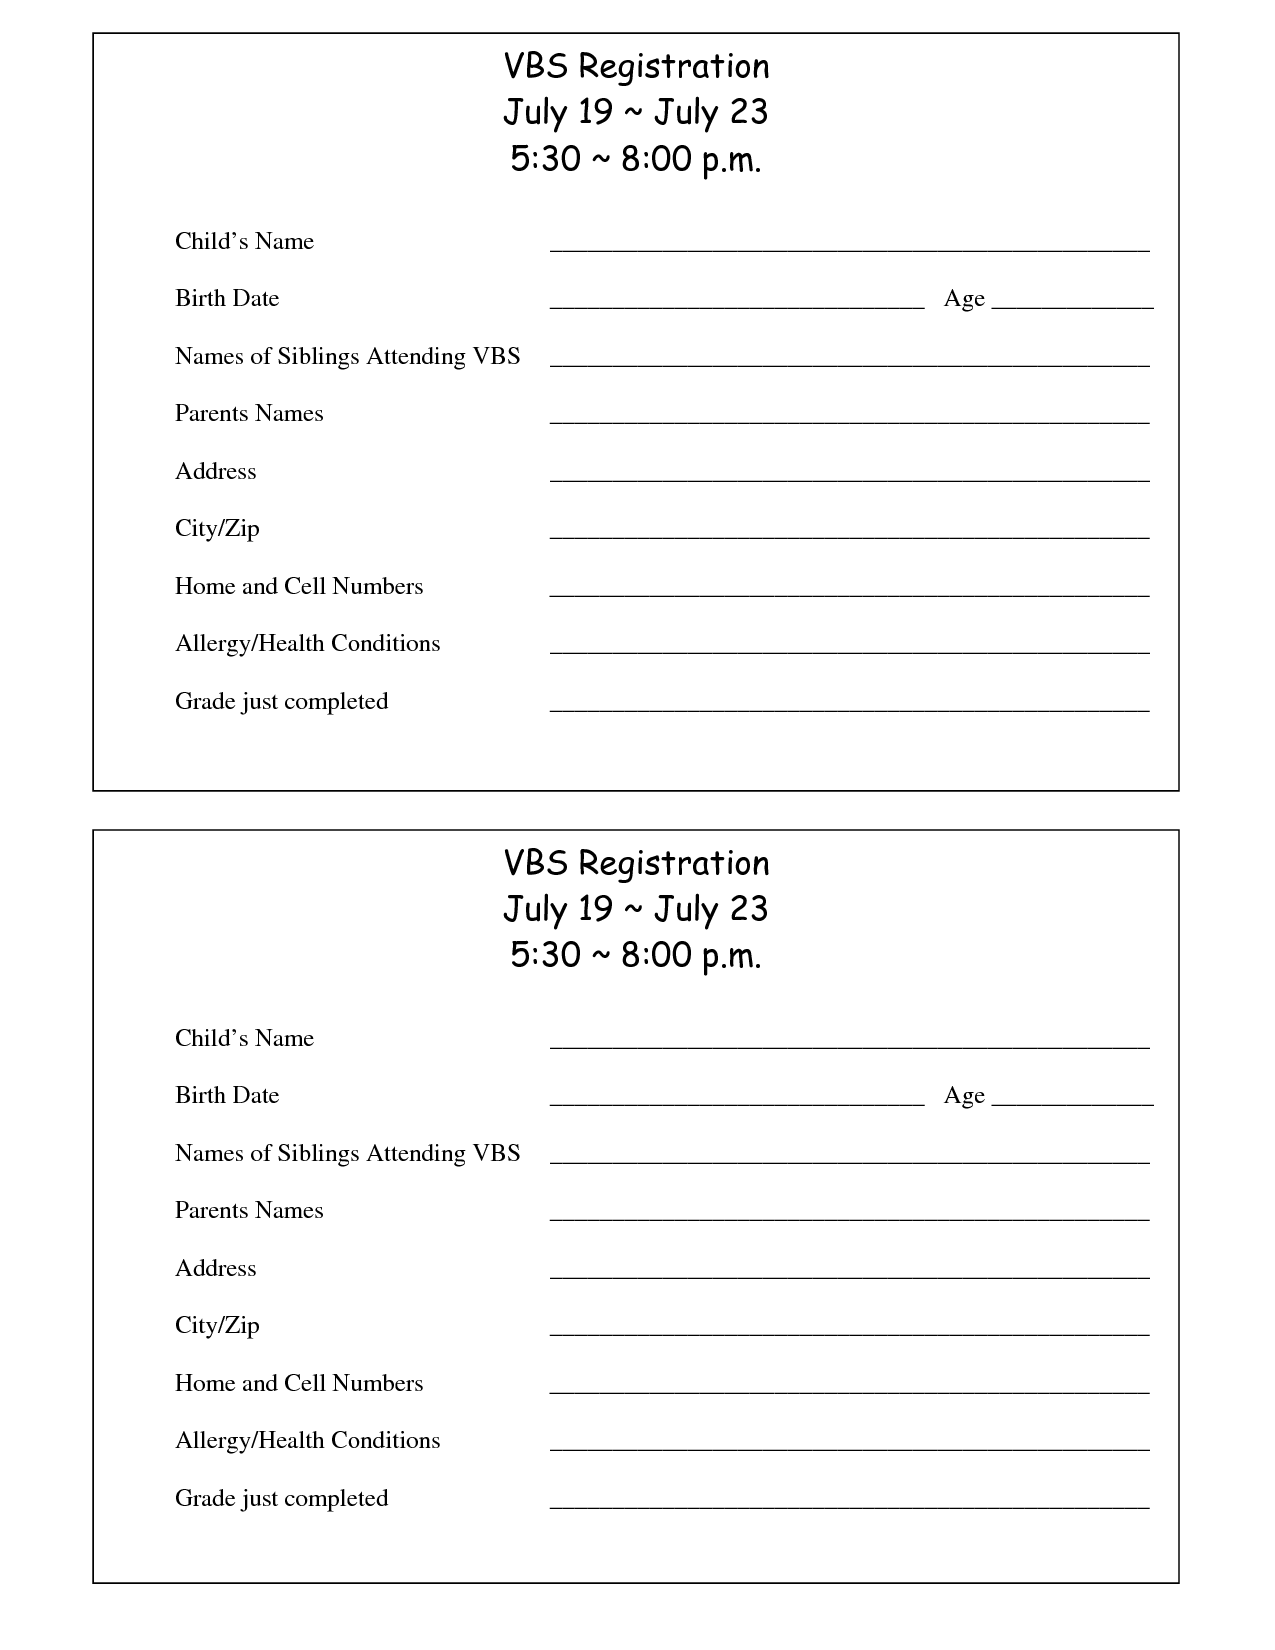 Printable VBS Registration Form Template | Conference ...